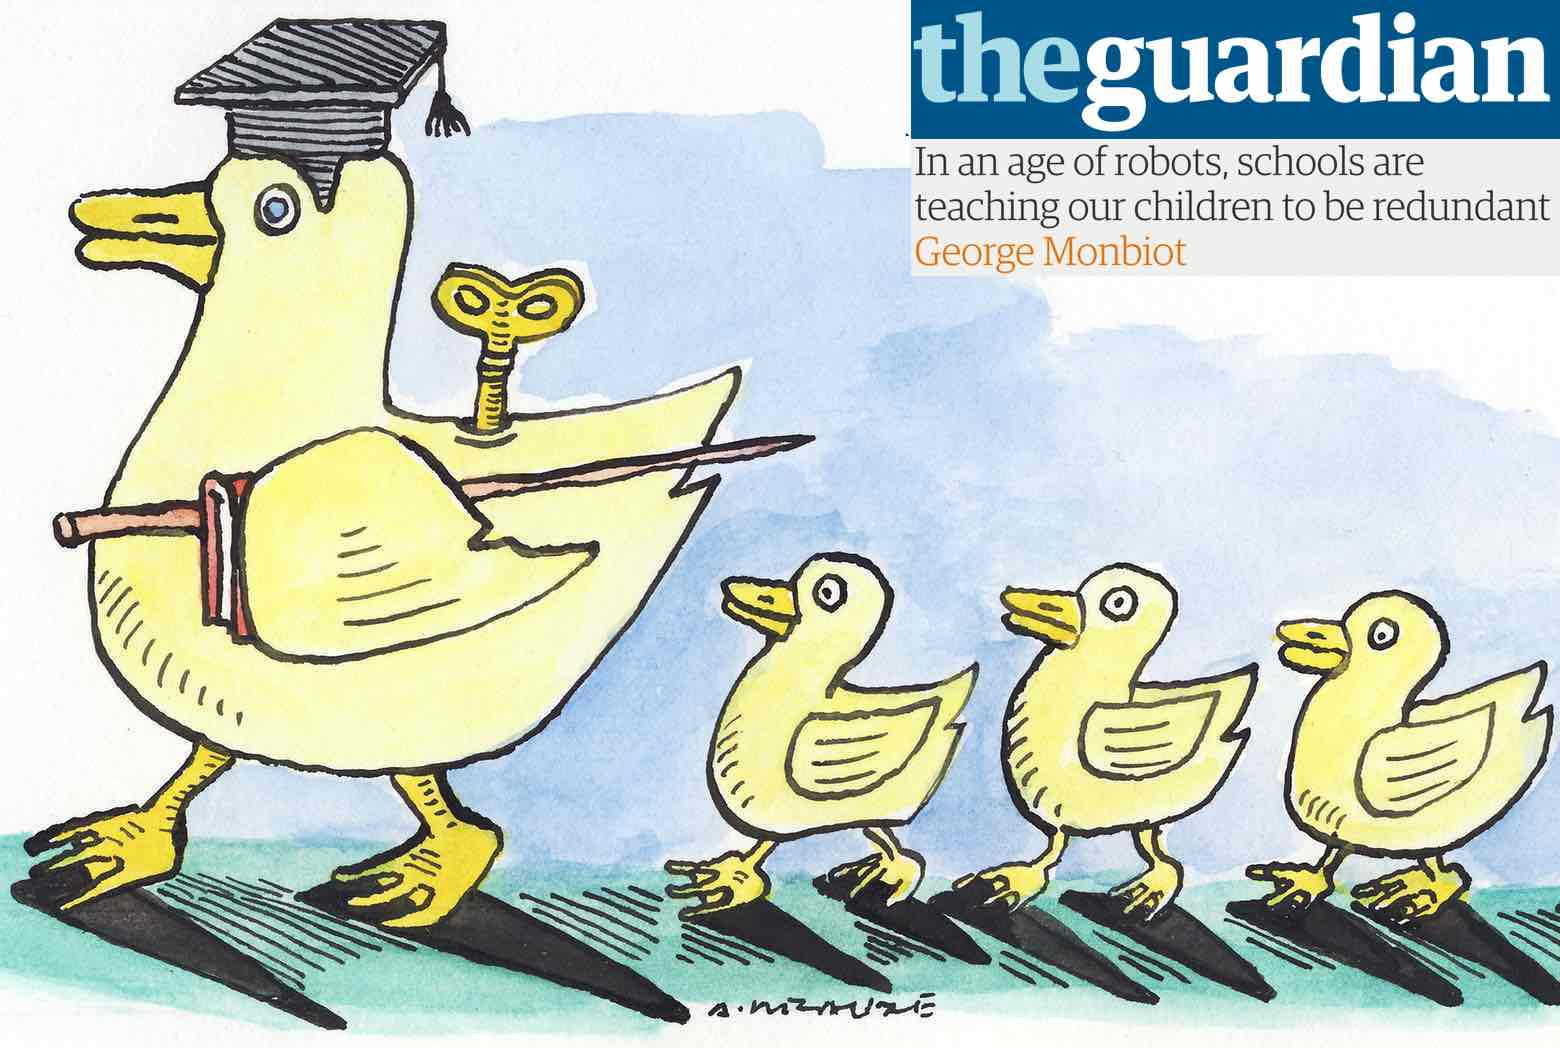 The Guardian - Changemaker Schools